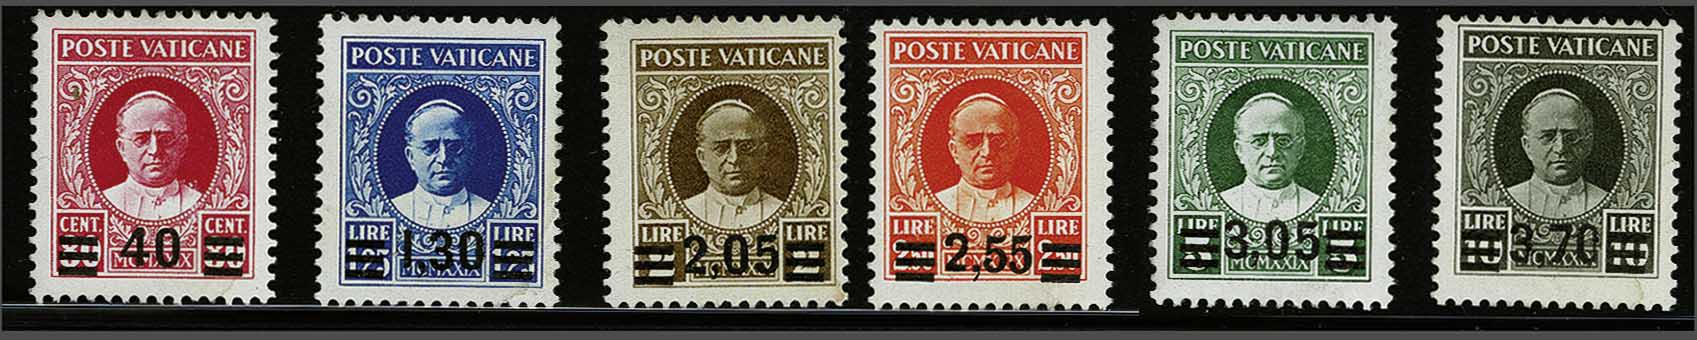 Lot 188 - Italy and former colonies Vatican City -  Corinphila Veilingen Auction 244 -Netherlands and former colonies, WW2 Postal History, Bosnia, German and British colonies, Egypt. - Day 1